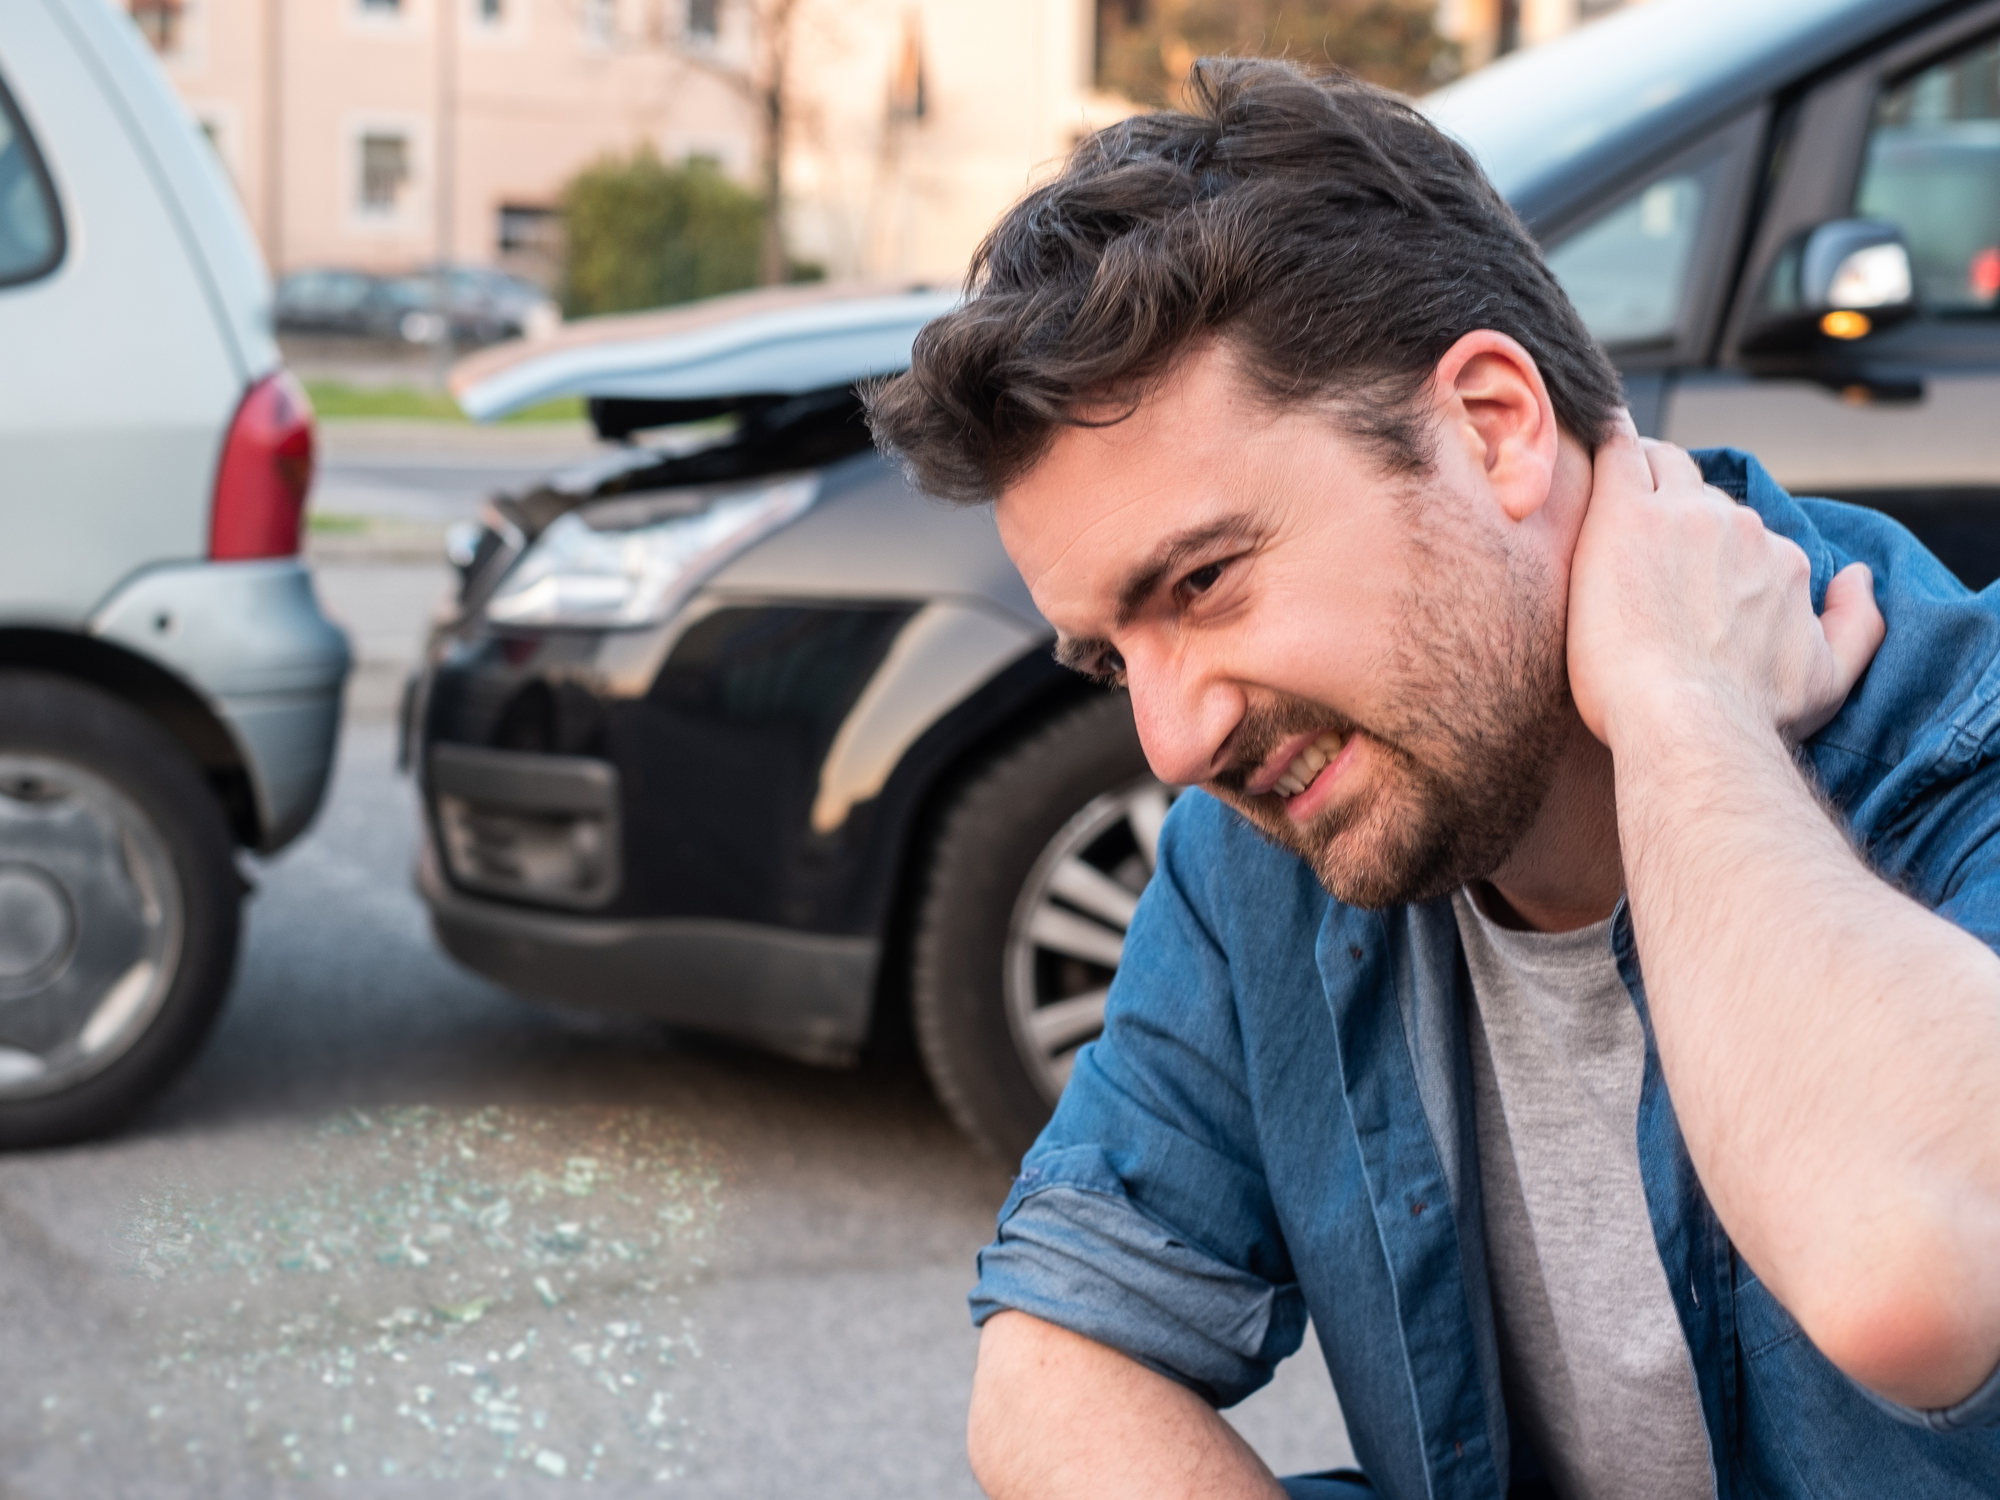 Can Whiplash Cause Permanent Injuries?